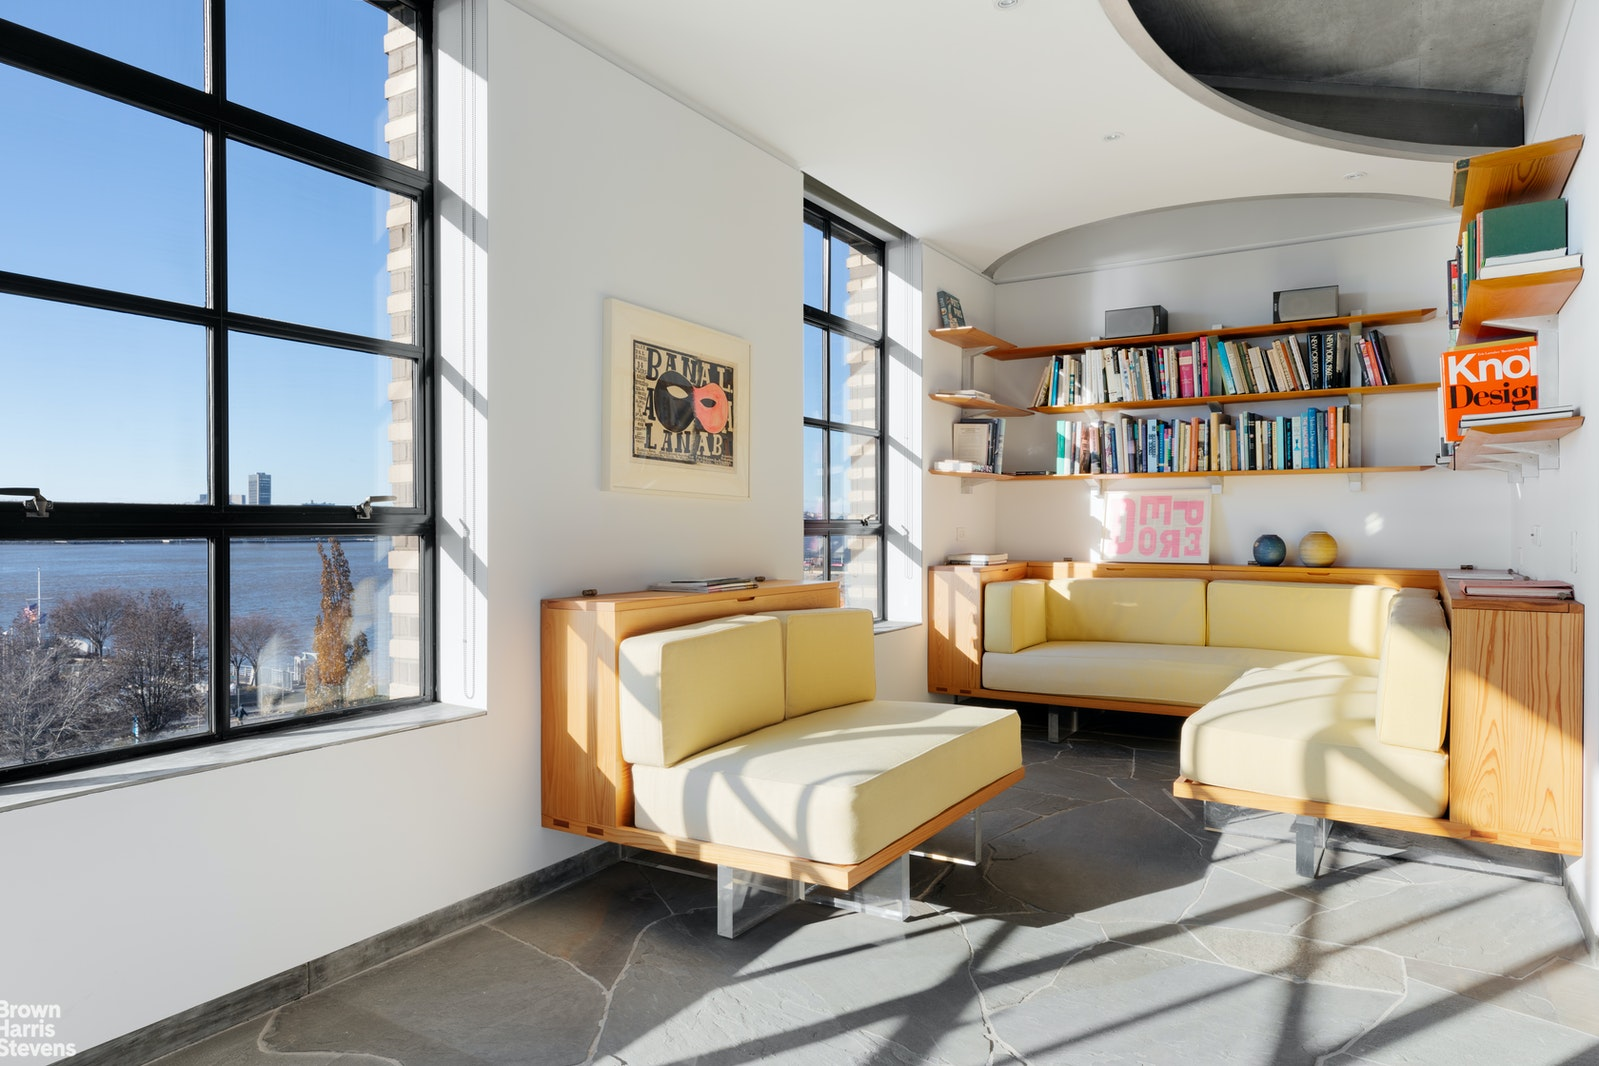 495 West Street 5, West Village, NYC, 10014, $7,495,000, Property For Sale, Halstead Real Estate, Photo 7